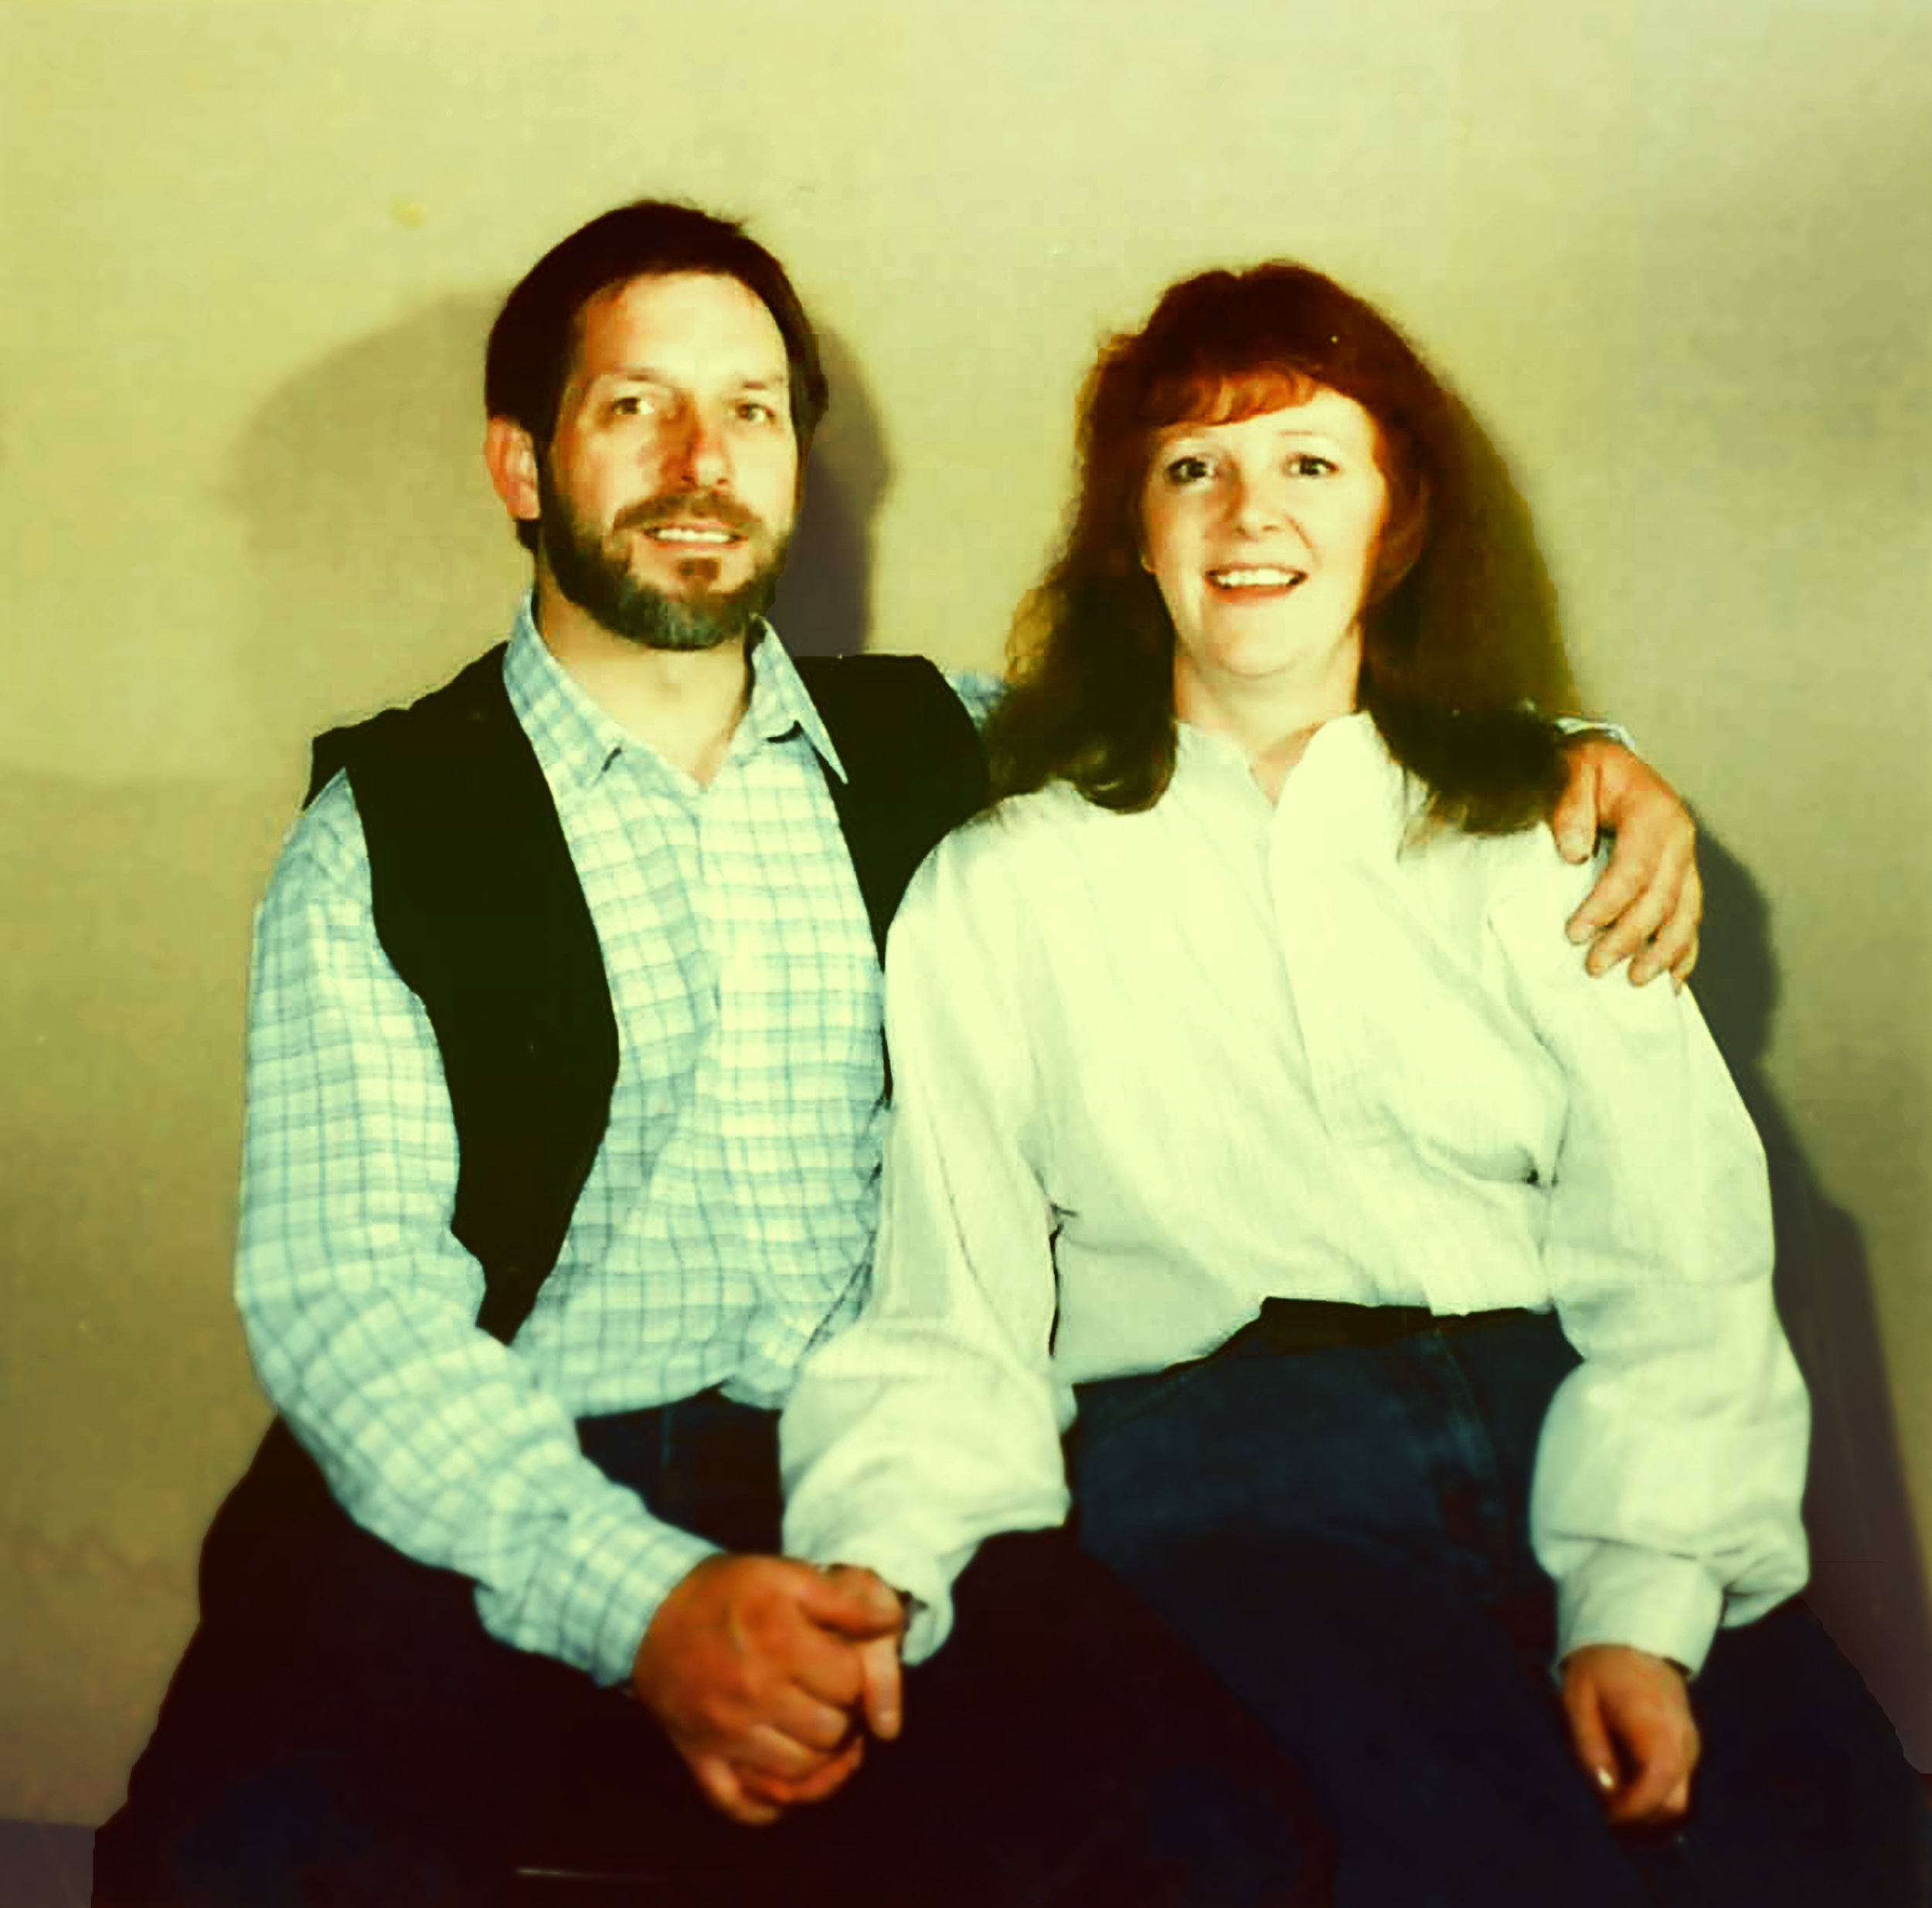 Sam & Anna c.1993— he was made Pastor of a small church in Dumfries